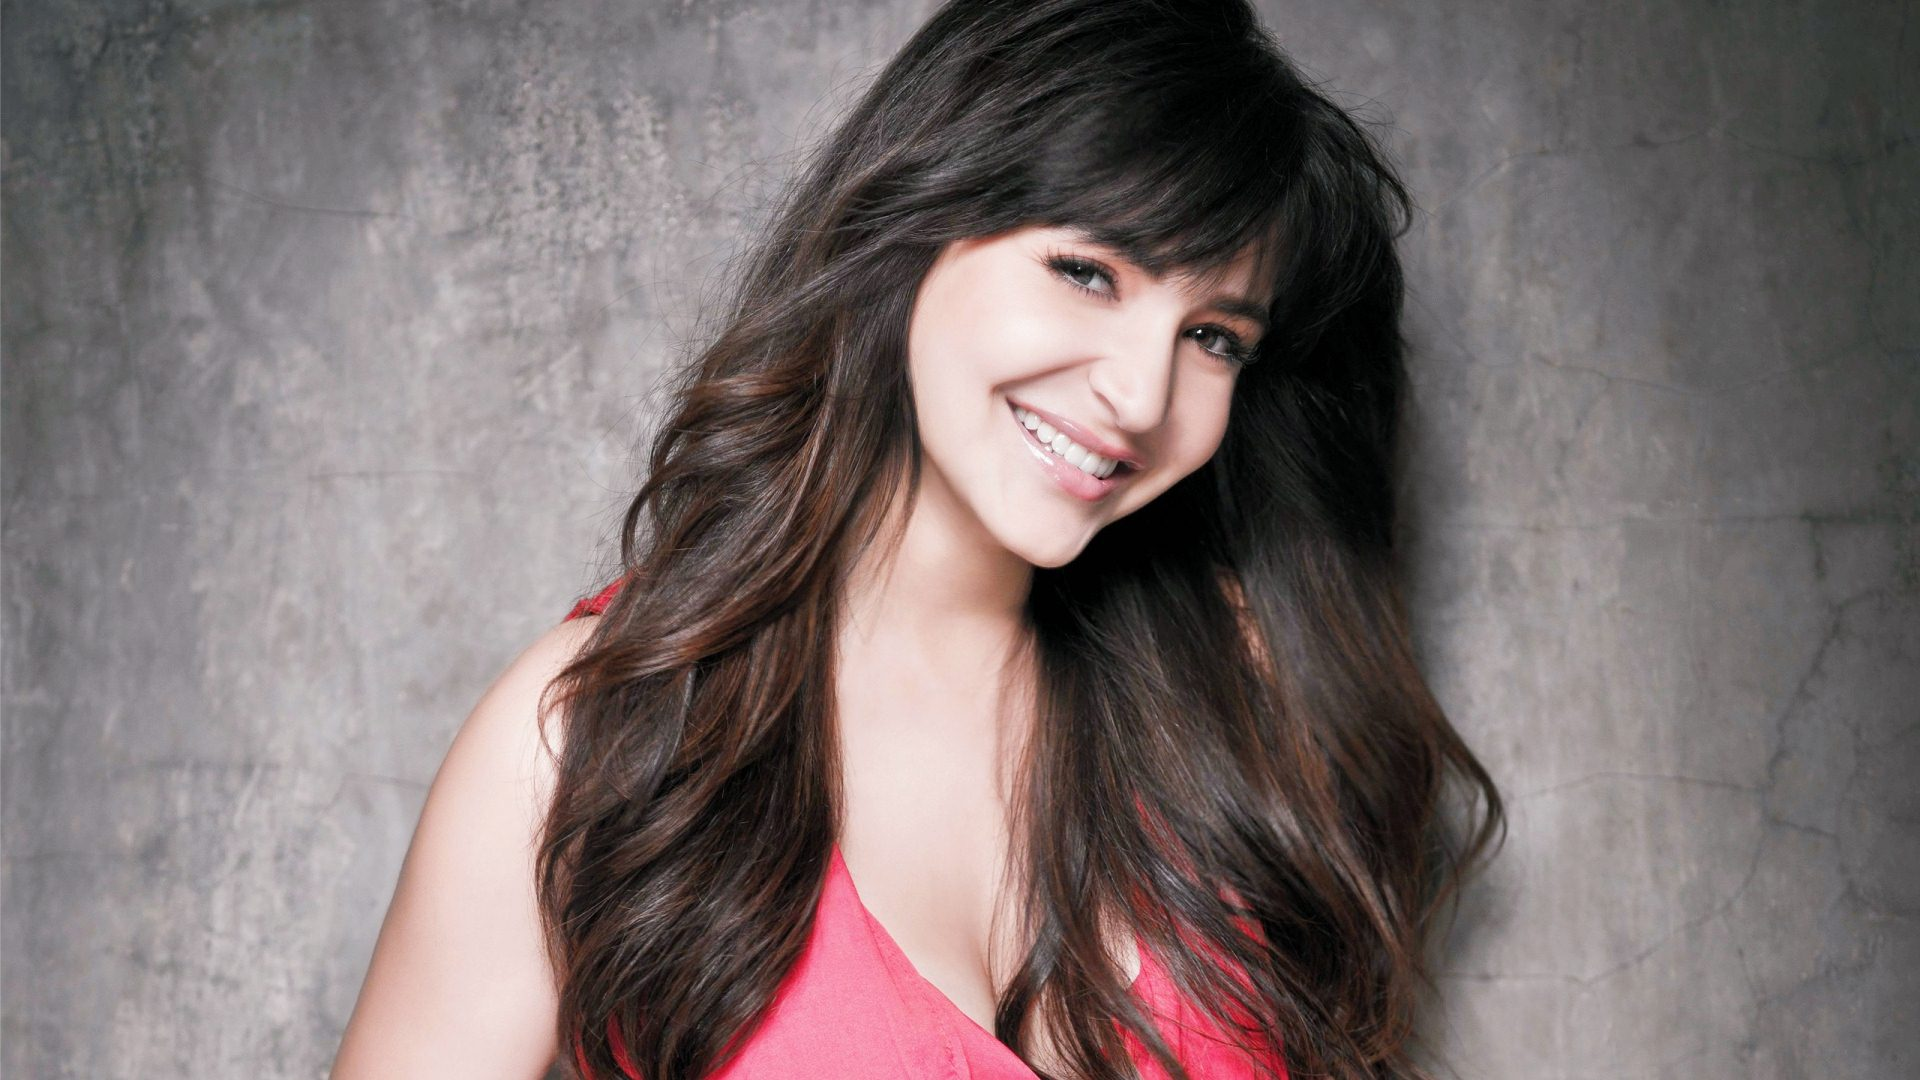 anushka sharma, the indian movie star who works maniacally and